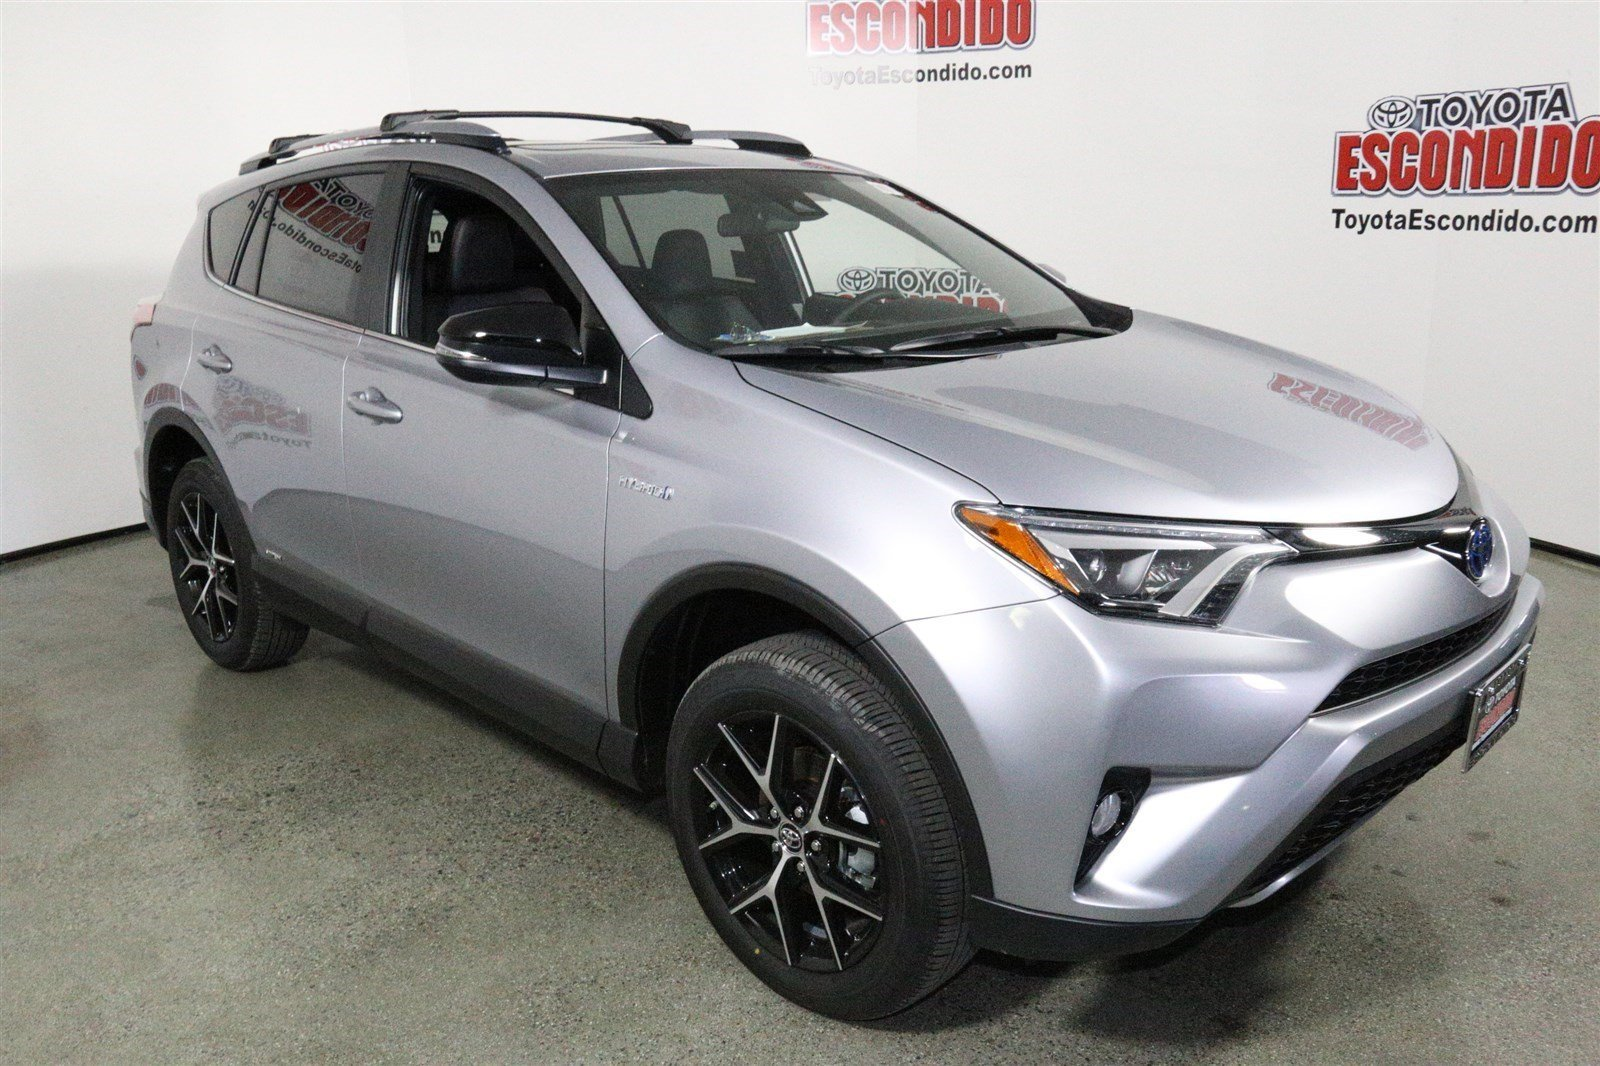 new 2017 toyota rav4 hybrid se sport utility in escondido hd089346 toyota of escondido. Black Bedroom Furniture Sets. Home Design Ideas